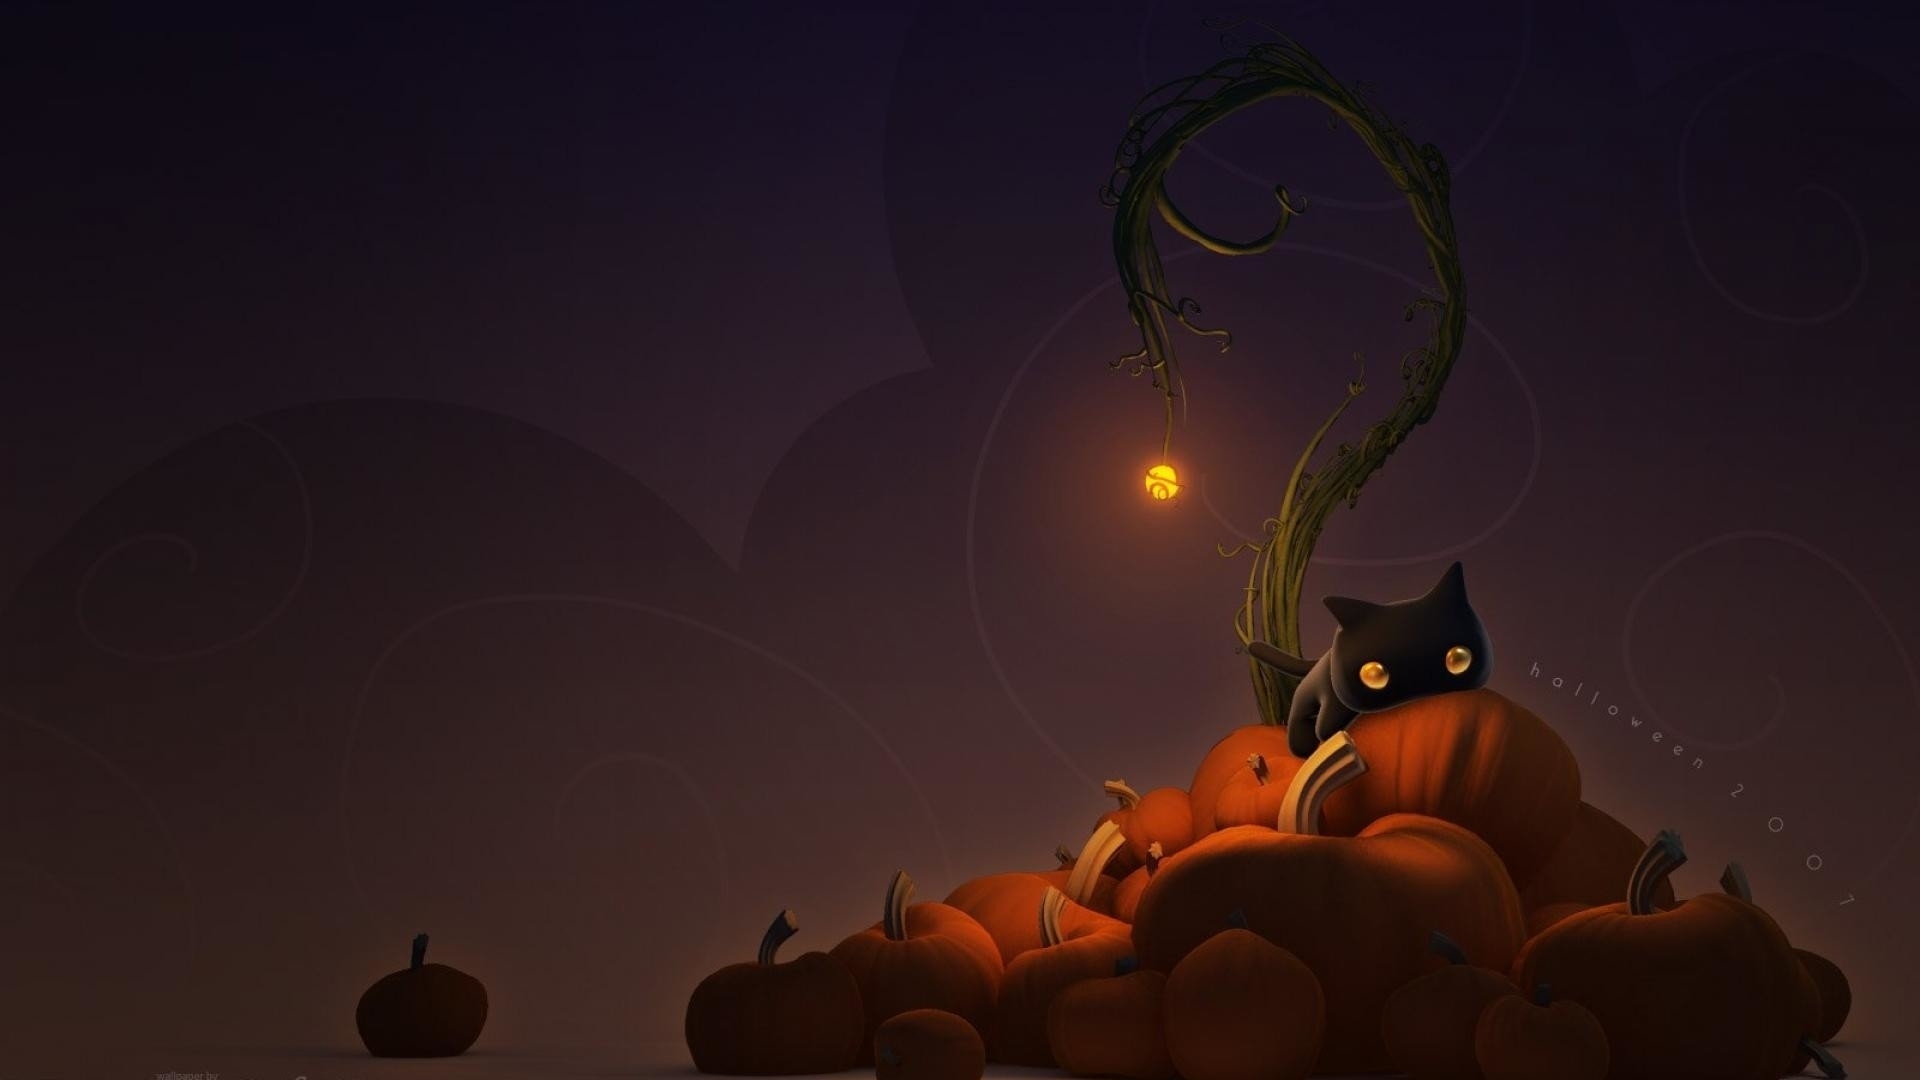 black cat halloween wallpaper (51+ images)